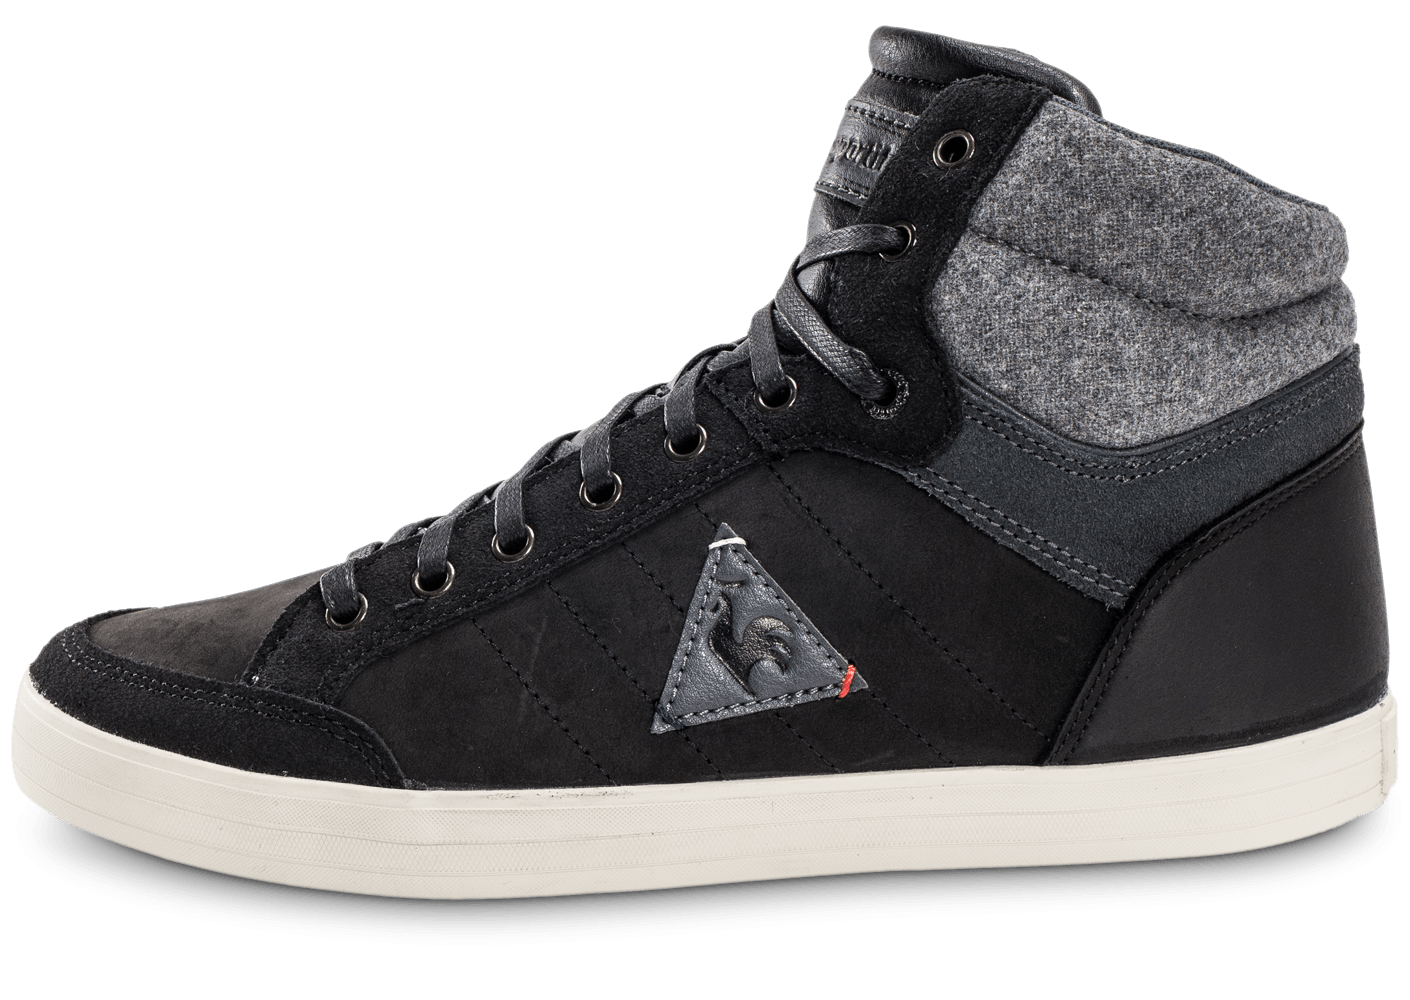 le coq sportif portalet mid craft leather noire chaussures homme chausport. Black Bedroom Furniture Sets. Home Design Ideas